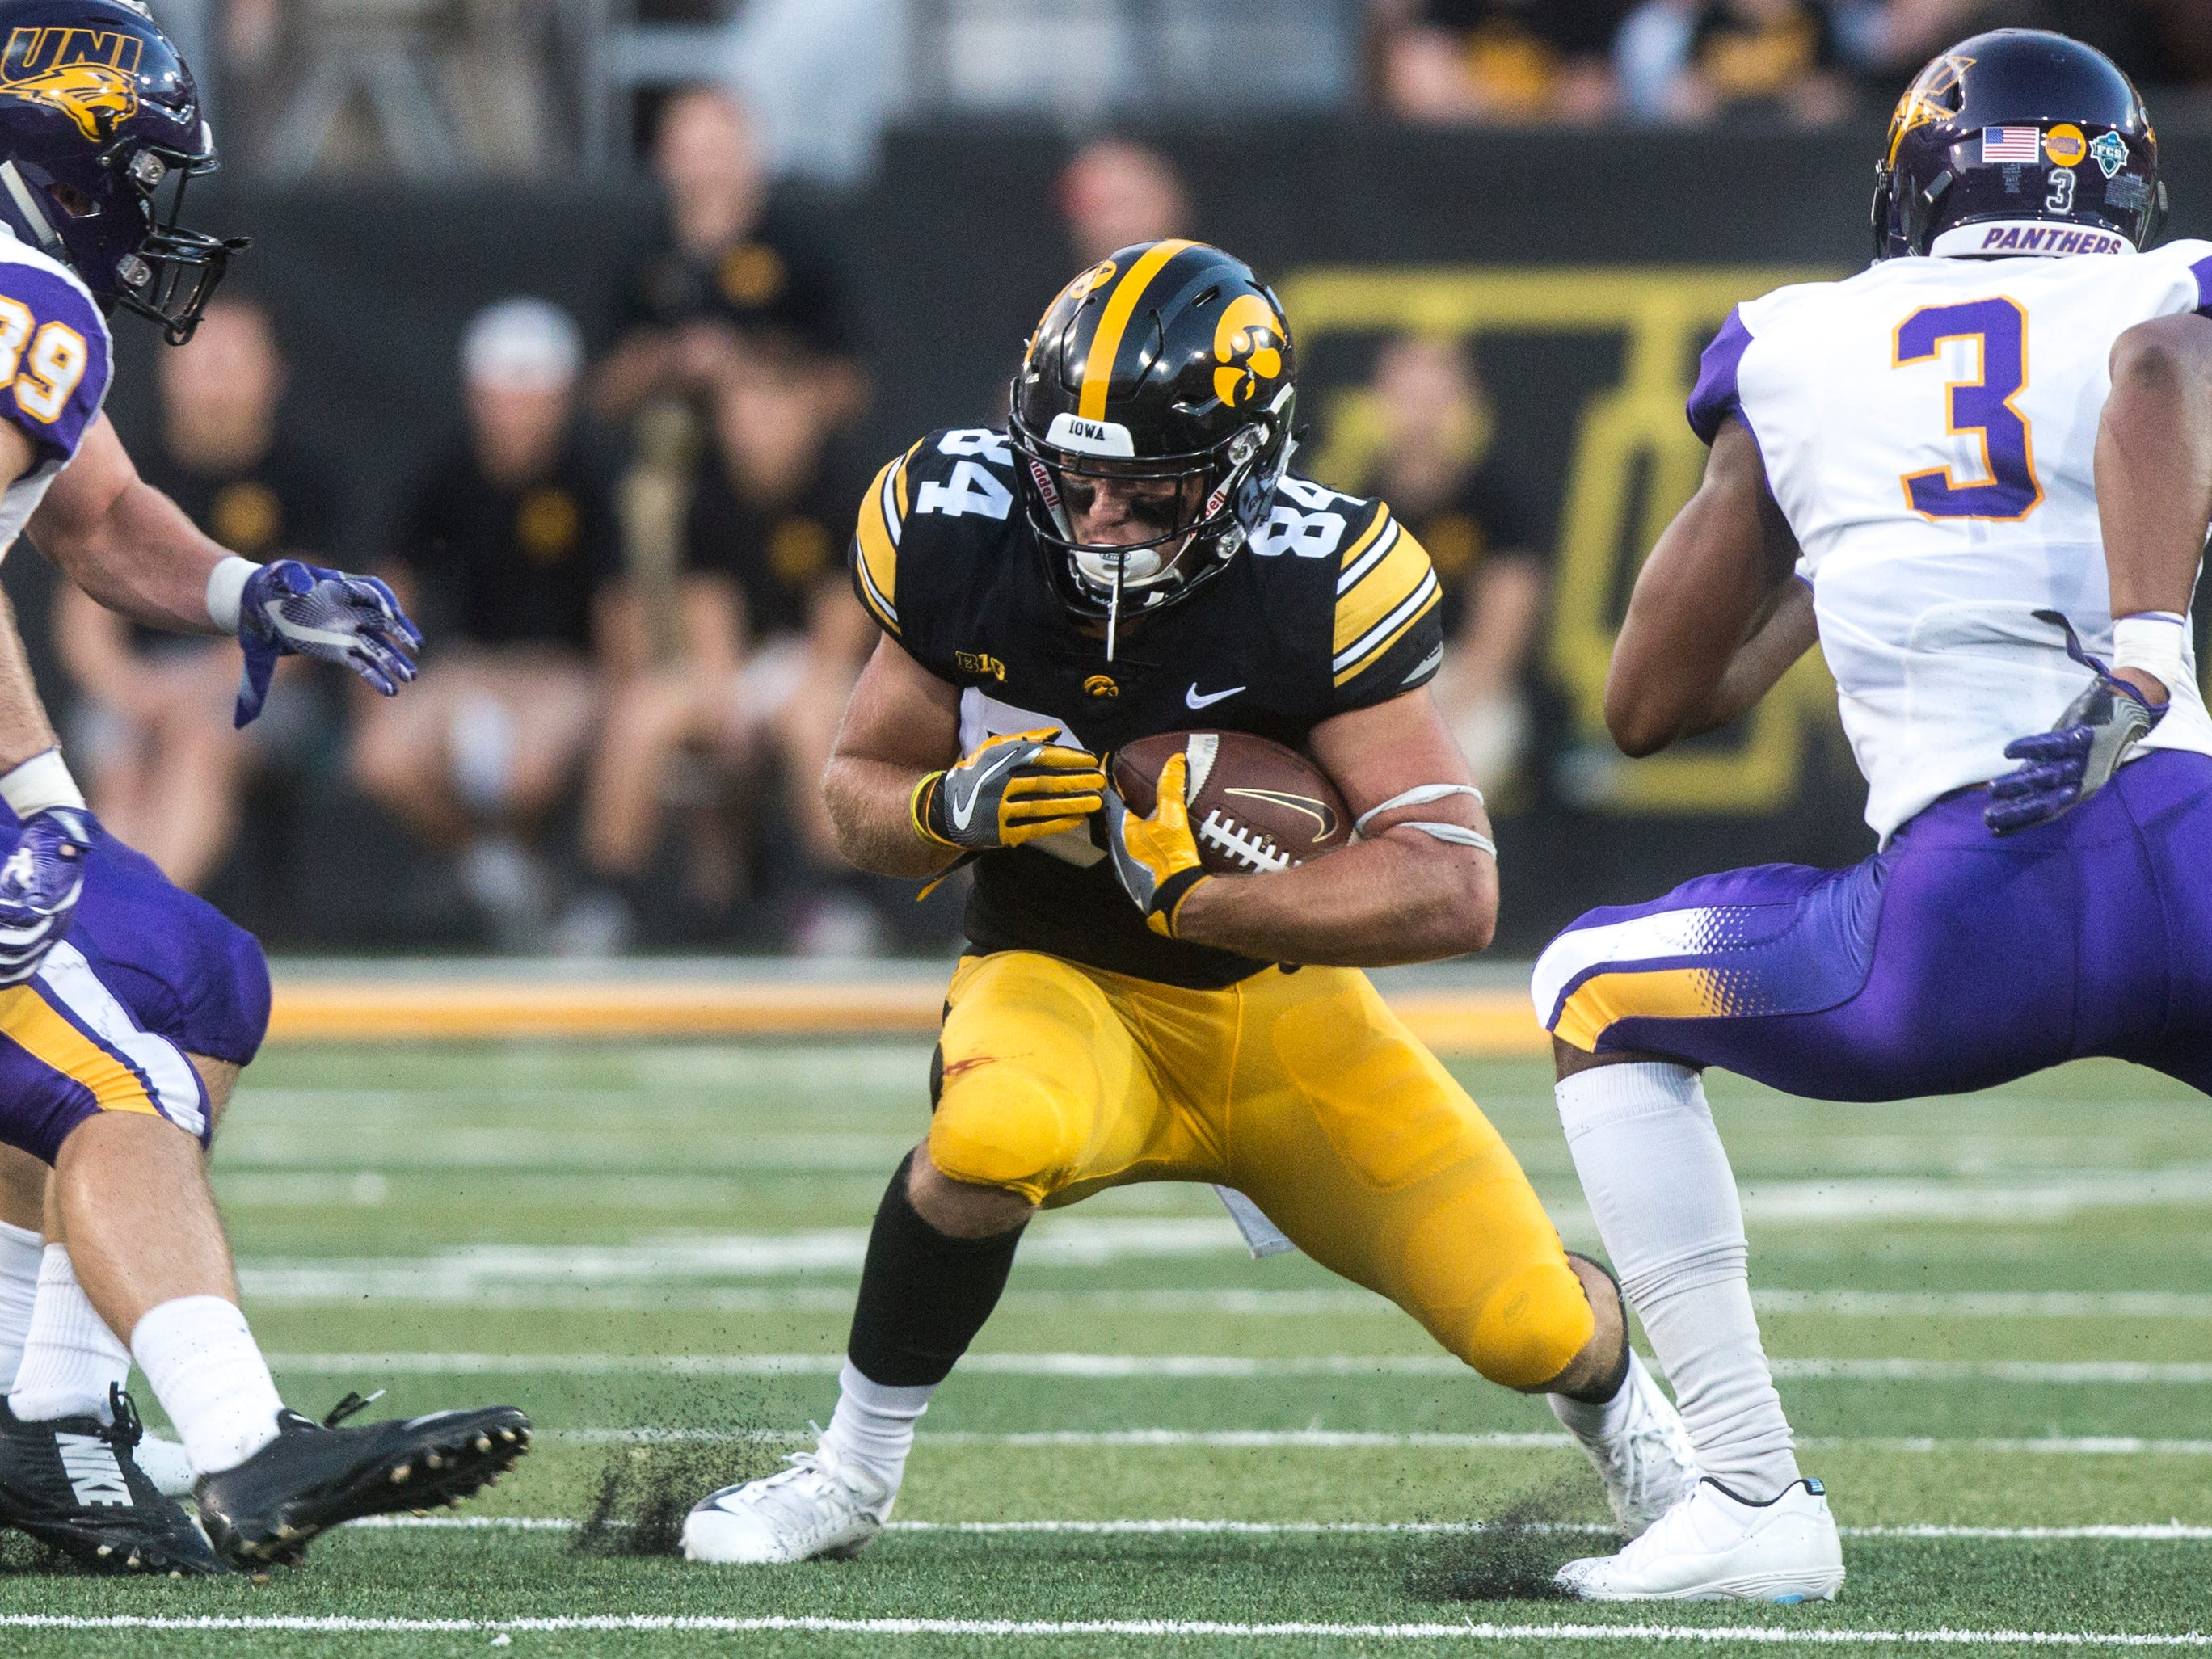 Iowa wide receiver Nick Easley (84) catches a pass while Northern Iowa defenders close in during an NCAA football game on Saturday, Sept. 15, 2018, at Kinnick Stadium in Iowa City.